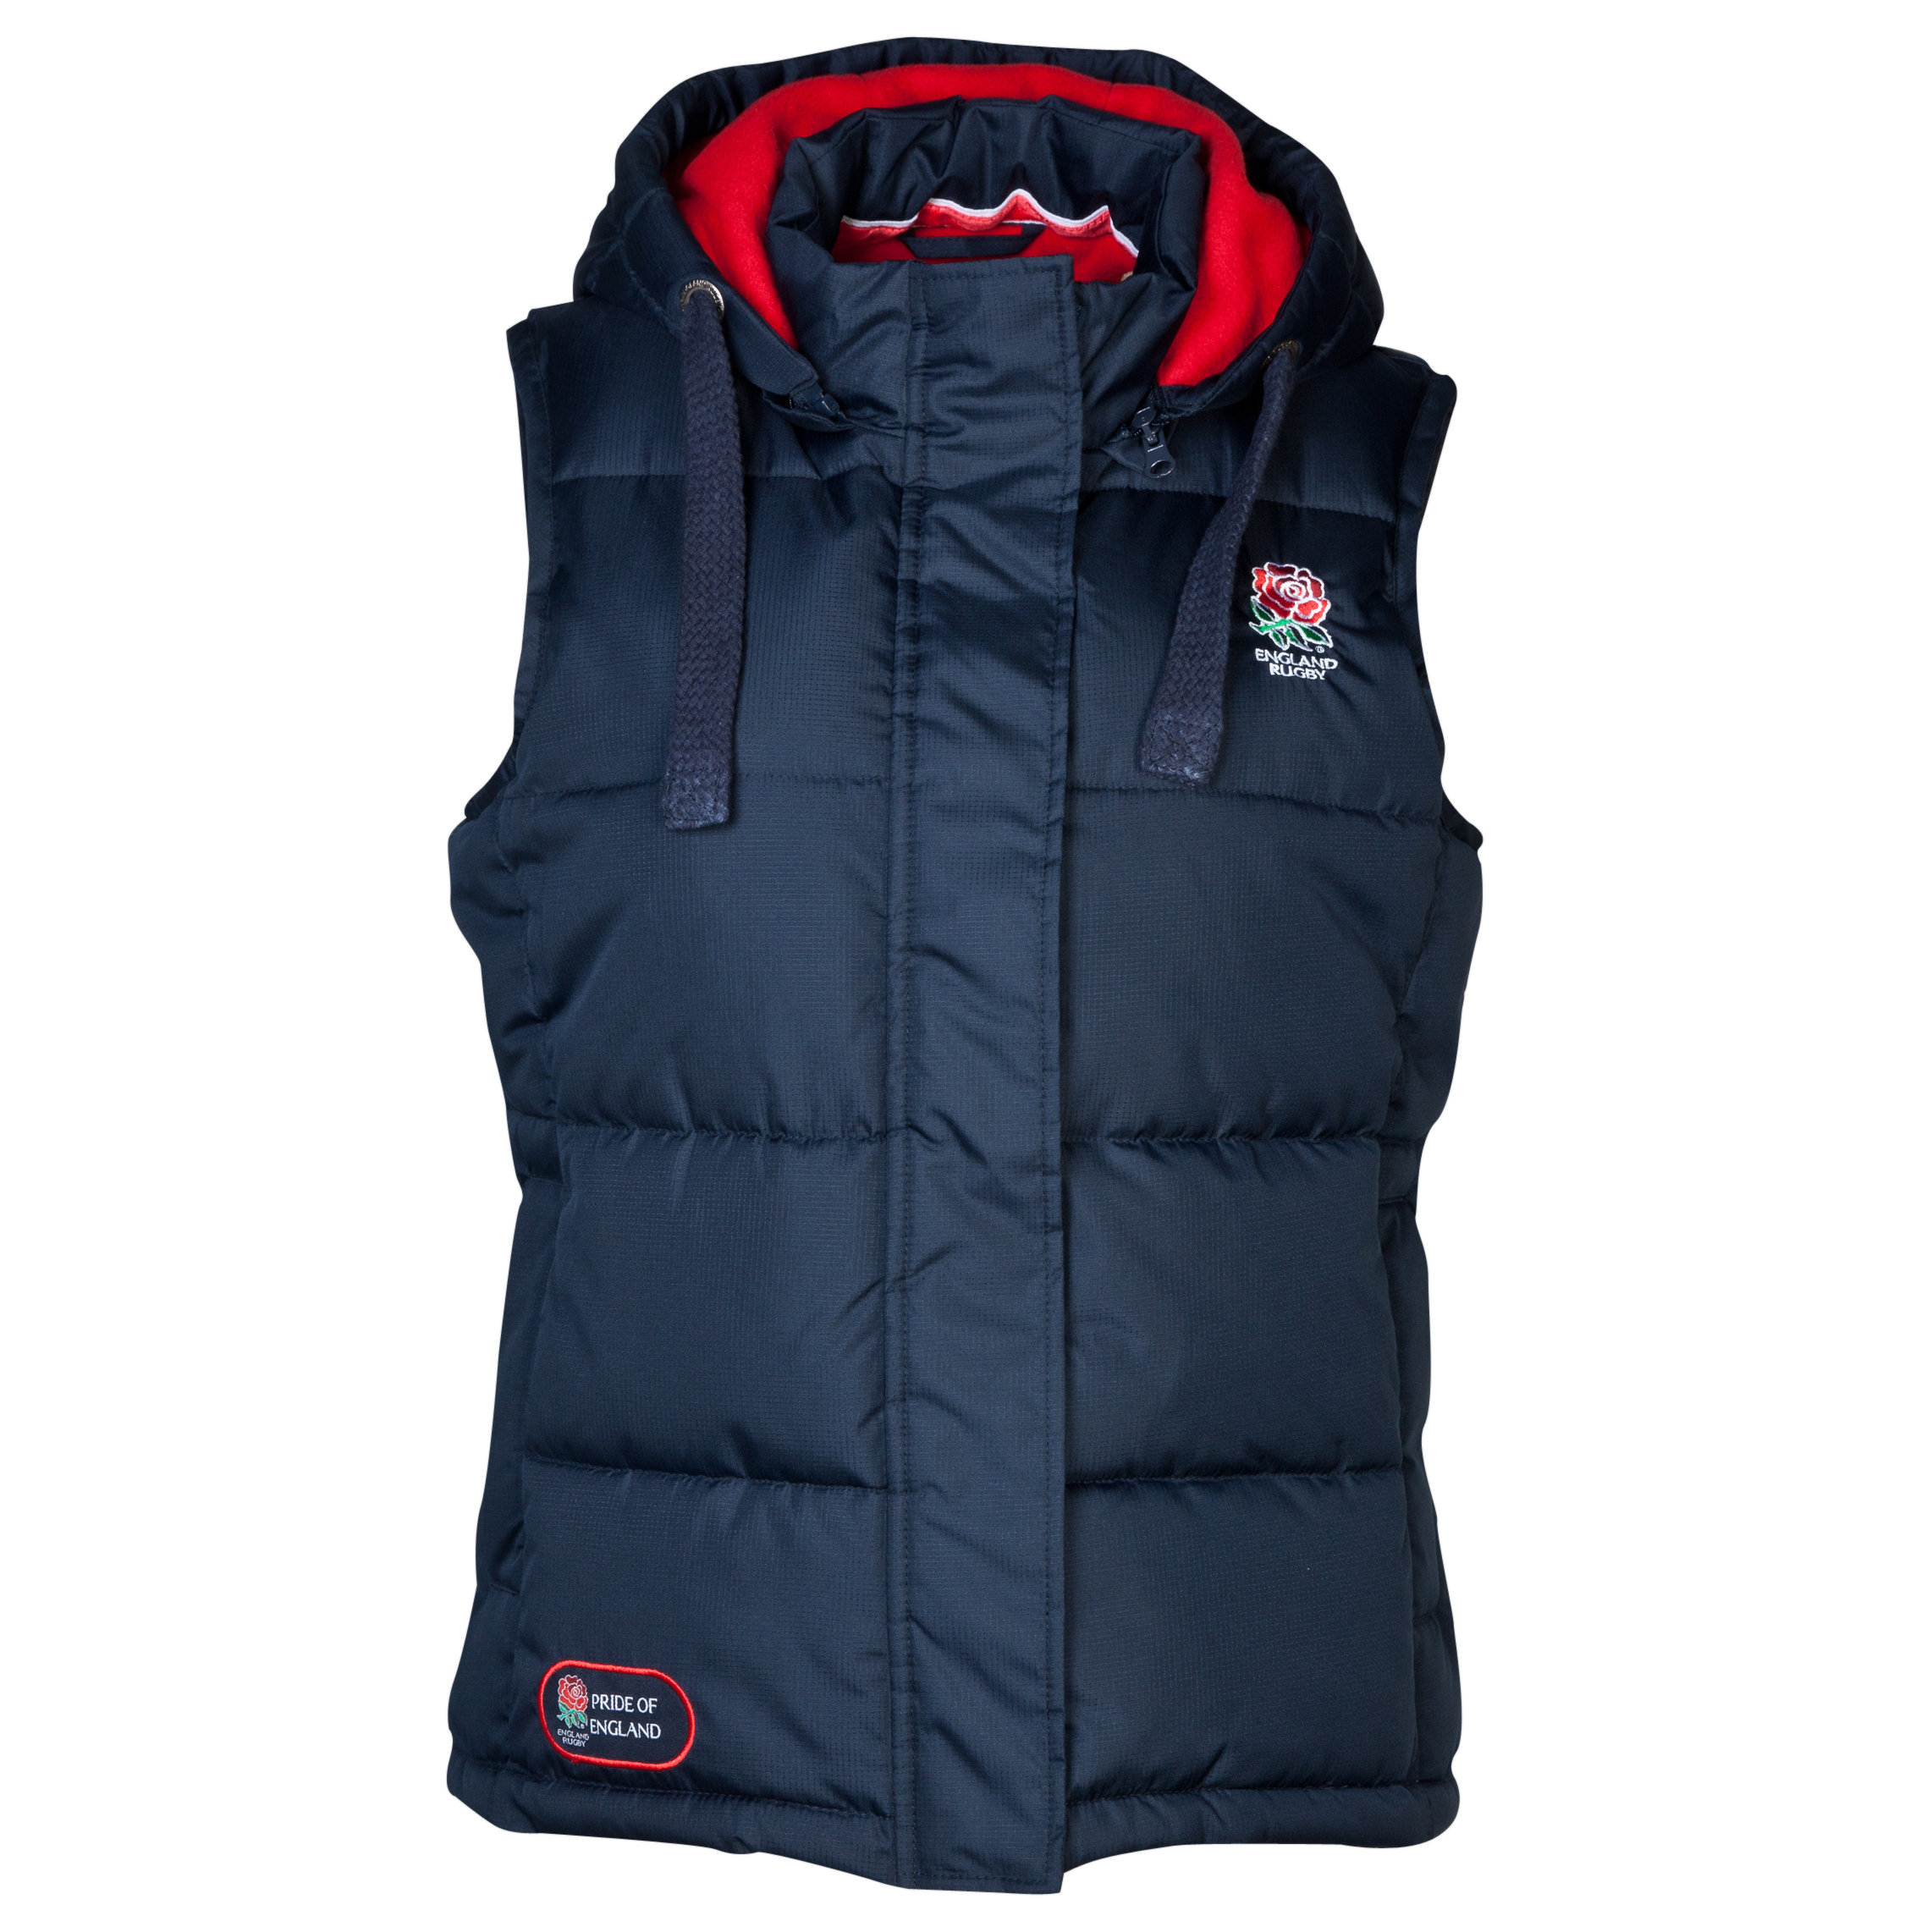 England Rugby Classics Collection Hooded Gilet - Womens Navy